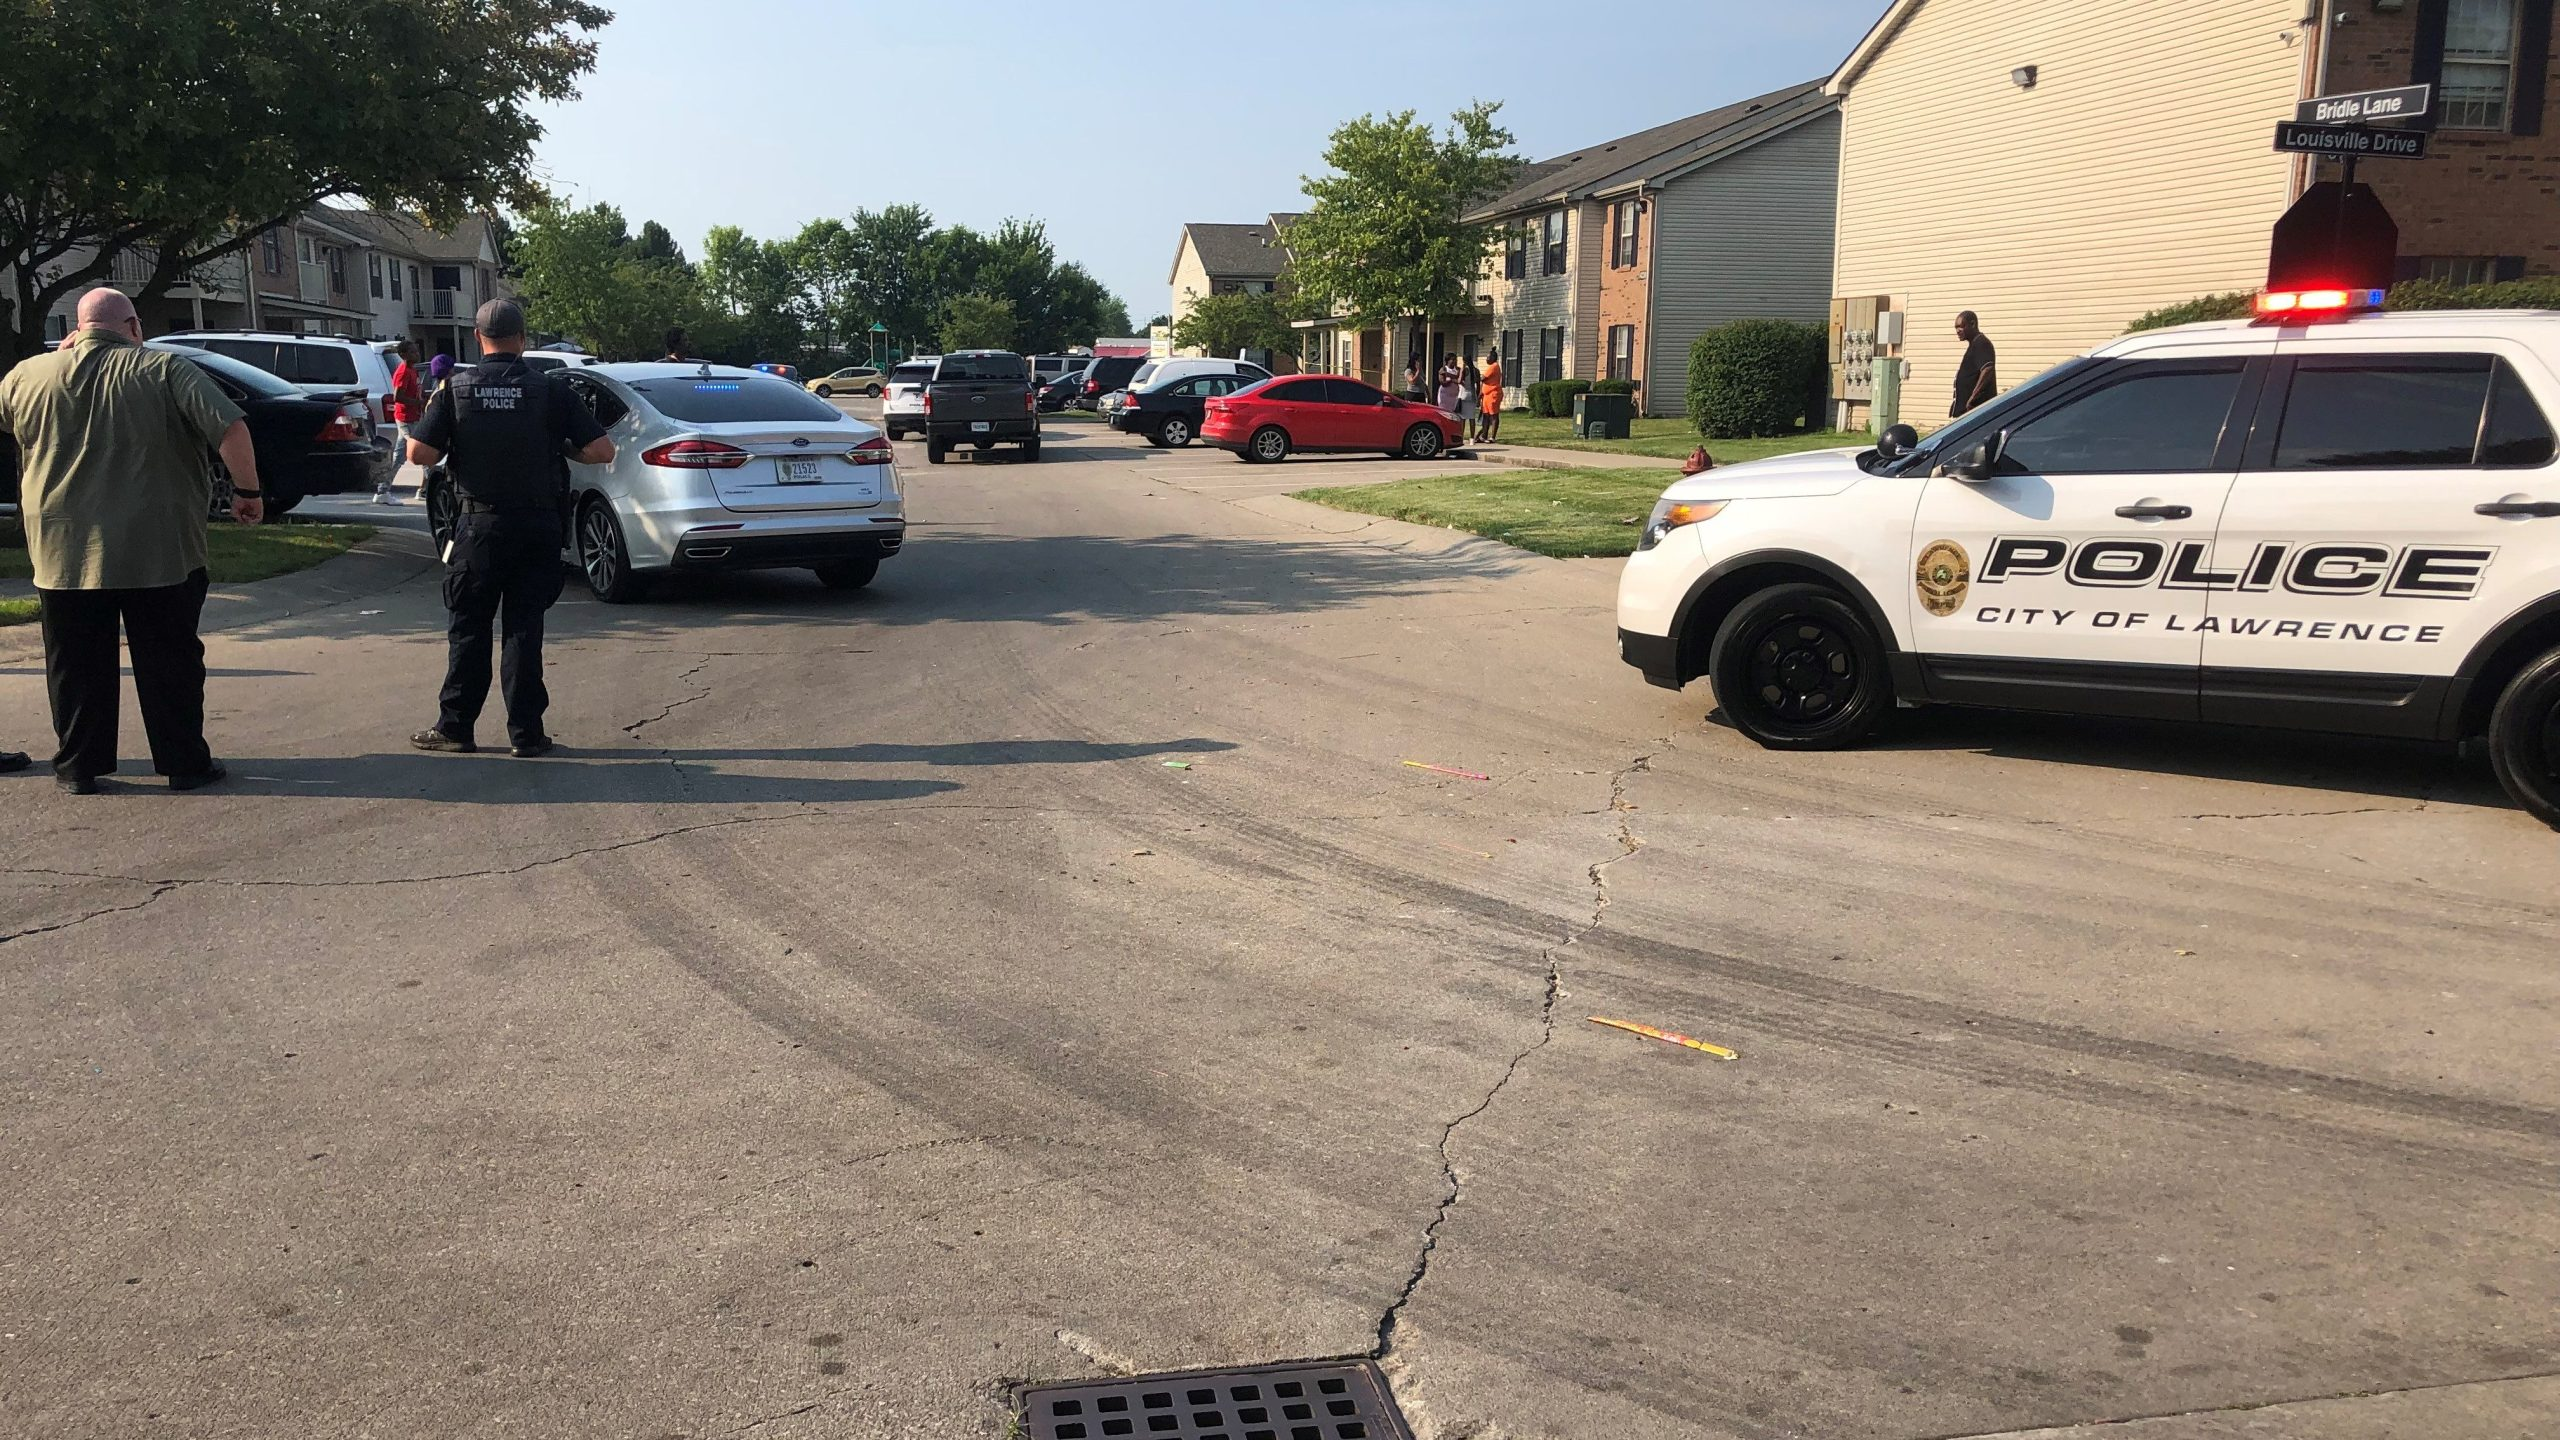 Person in critical condition after shooting in Lawrence